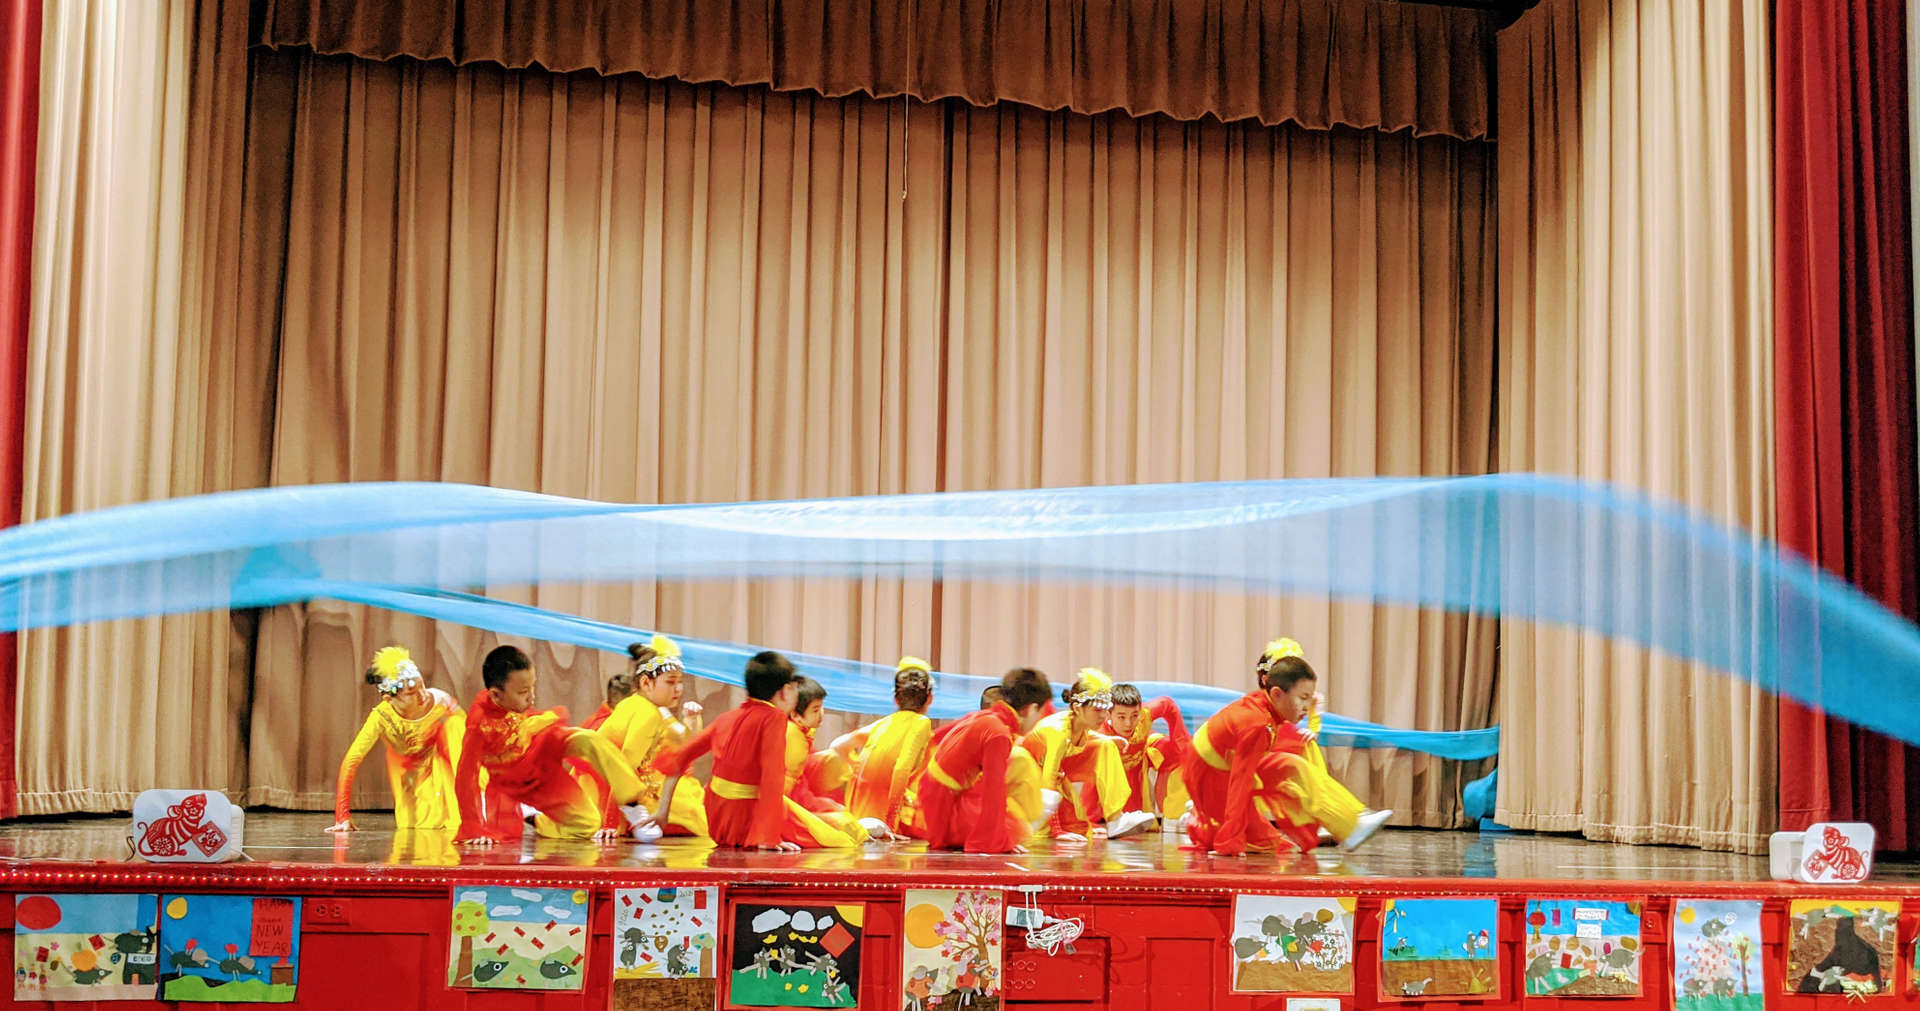 Students perform the lotus flower dance.